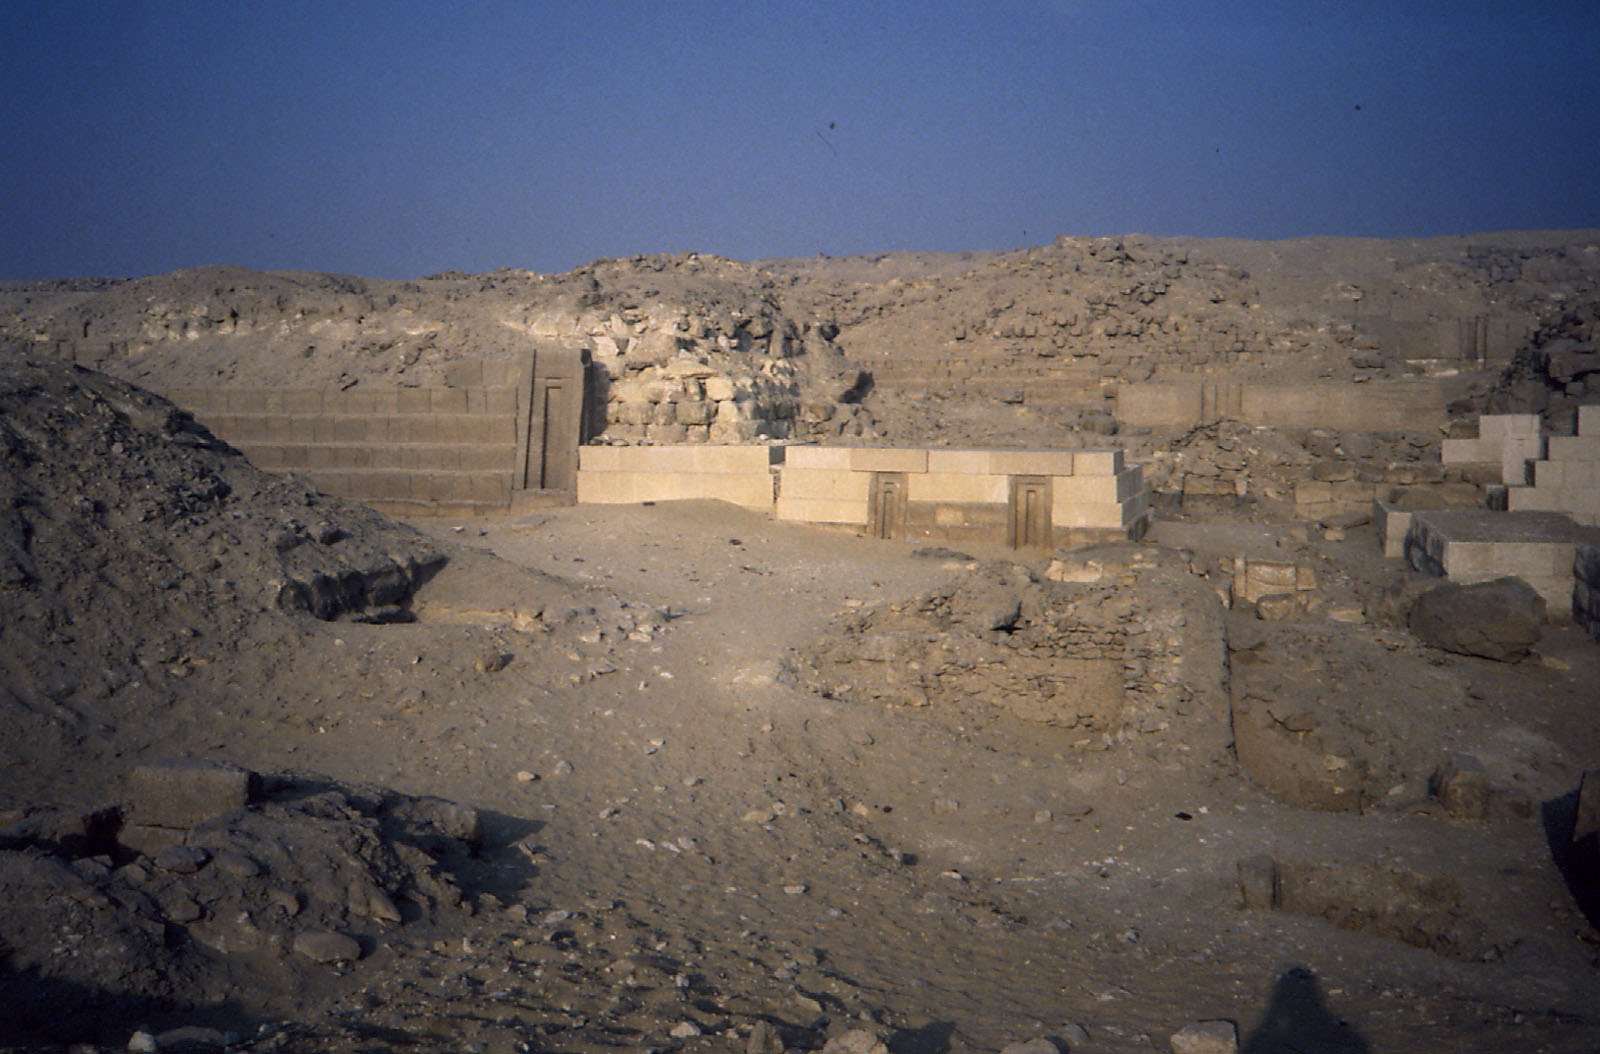 Western Cemetery: Site: Giza; View: G 2150, G 2151, G 2225, G 2157, G 2170, G 2154, G 2154a